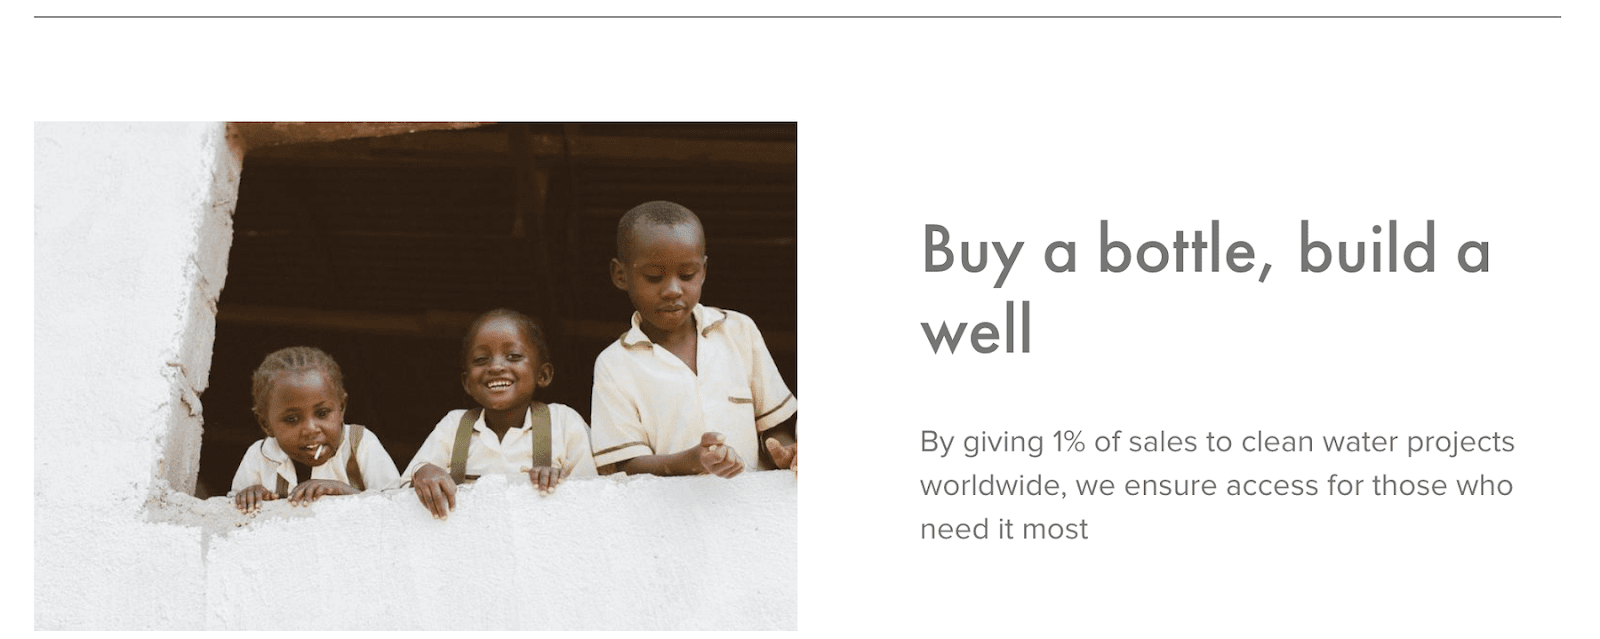 """graphic showing 3 children with the text: """"Buy a bottle, build a well. By giving 1% of sales to clean water projects worldwide, we ensure access for those who need it most"""""""